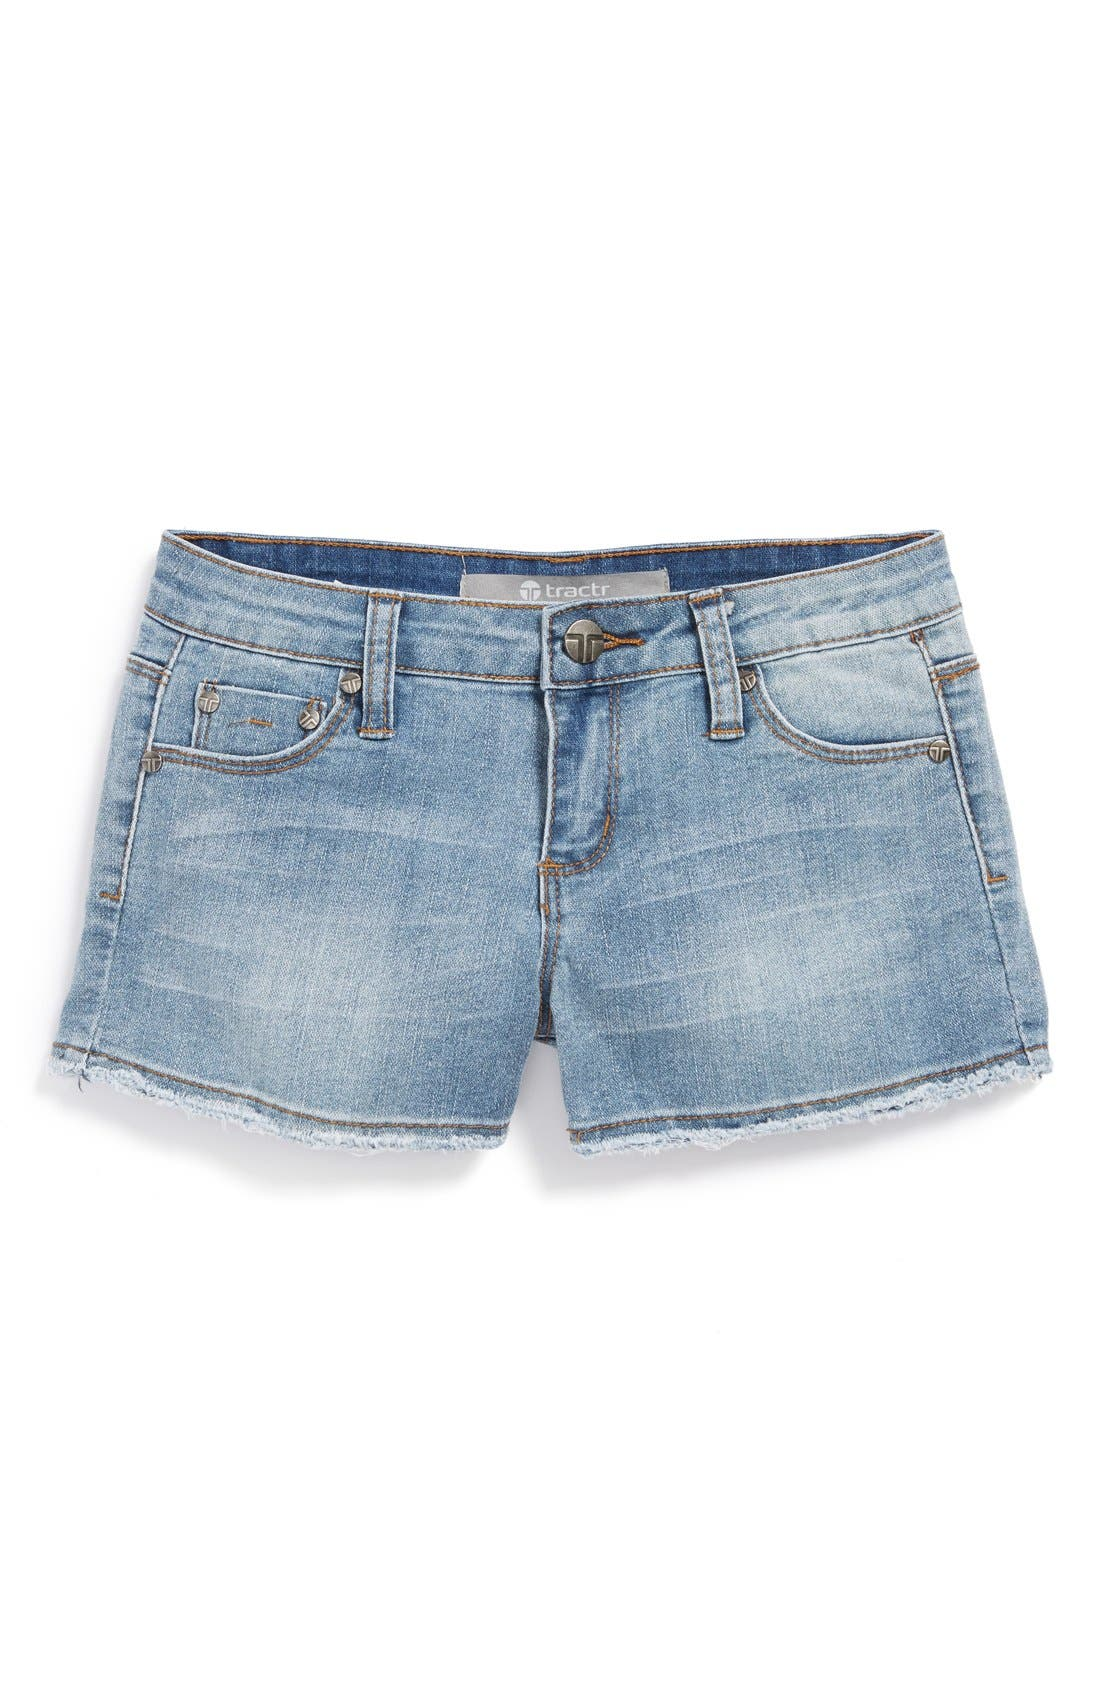 Alternate Image 2  - Tractr Frayed Denim Shorts (Big Girls)